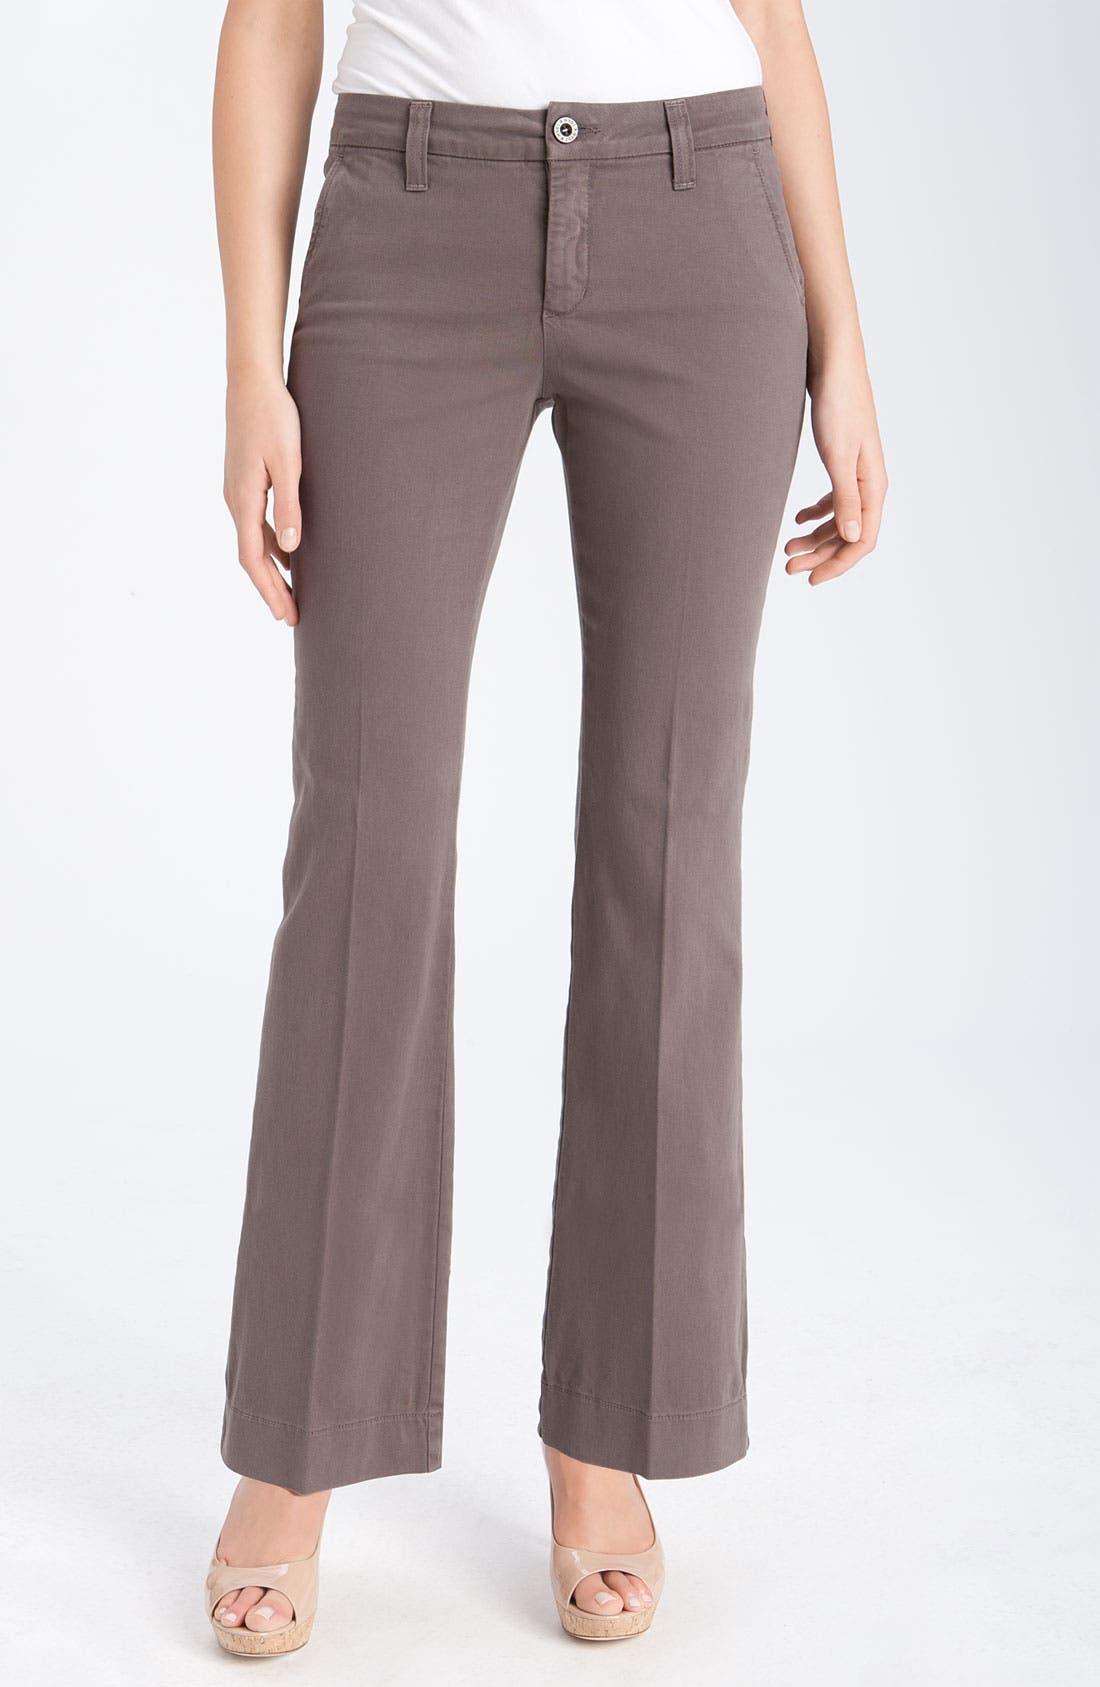 Main Image - NYDJ 'Vanessa' Stretch Trousers (Petite)